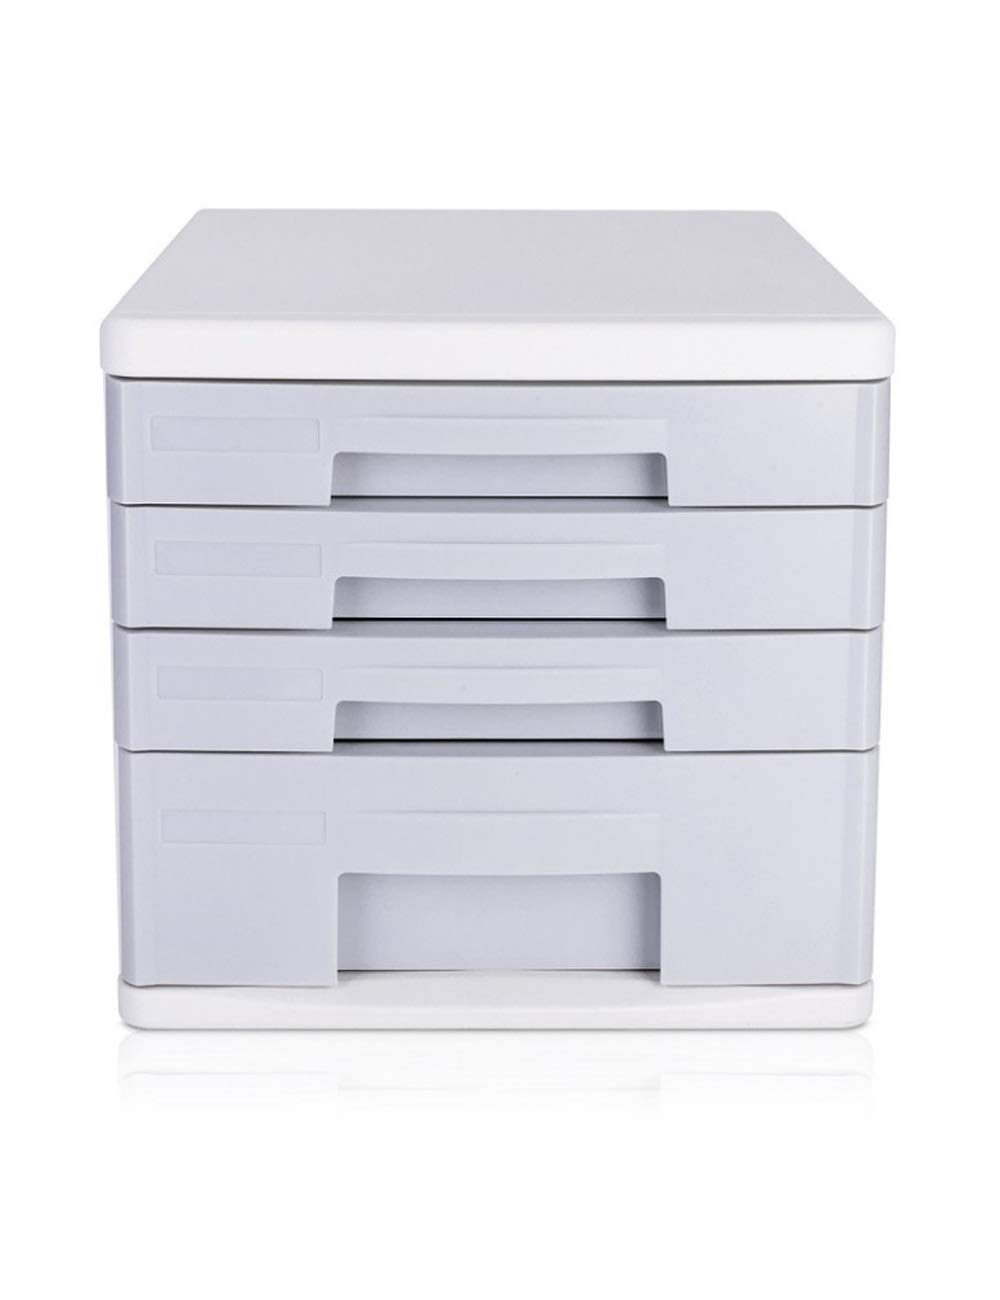 File Cabinets Ight Grey Desktop Drawer Type Stationery Cabinet 4th Floor A4 Plastic Data Cabinet Storage Box Storage Home Office Furniture by File Cabinets